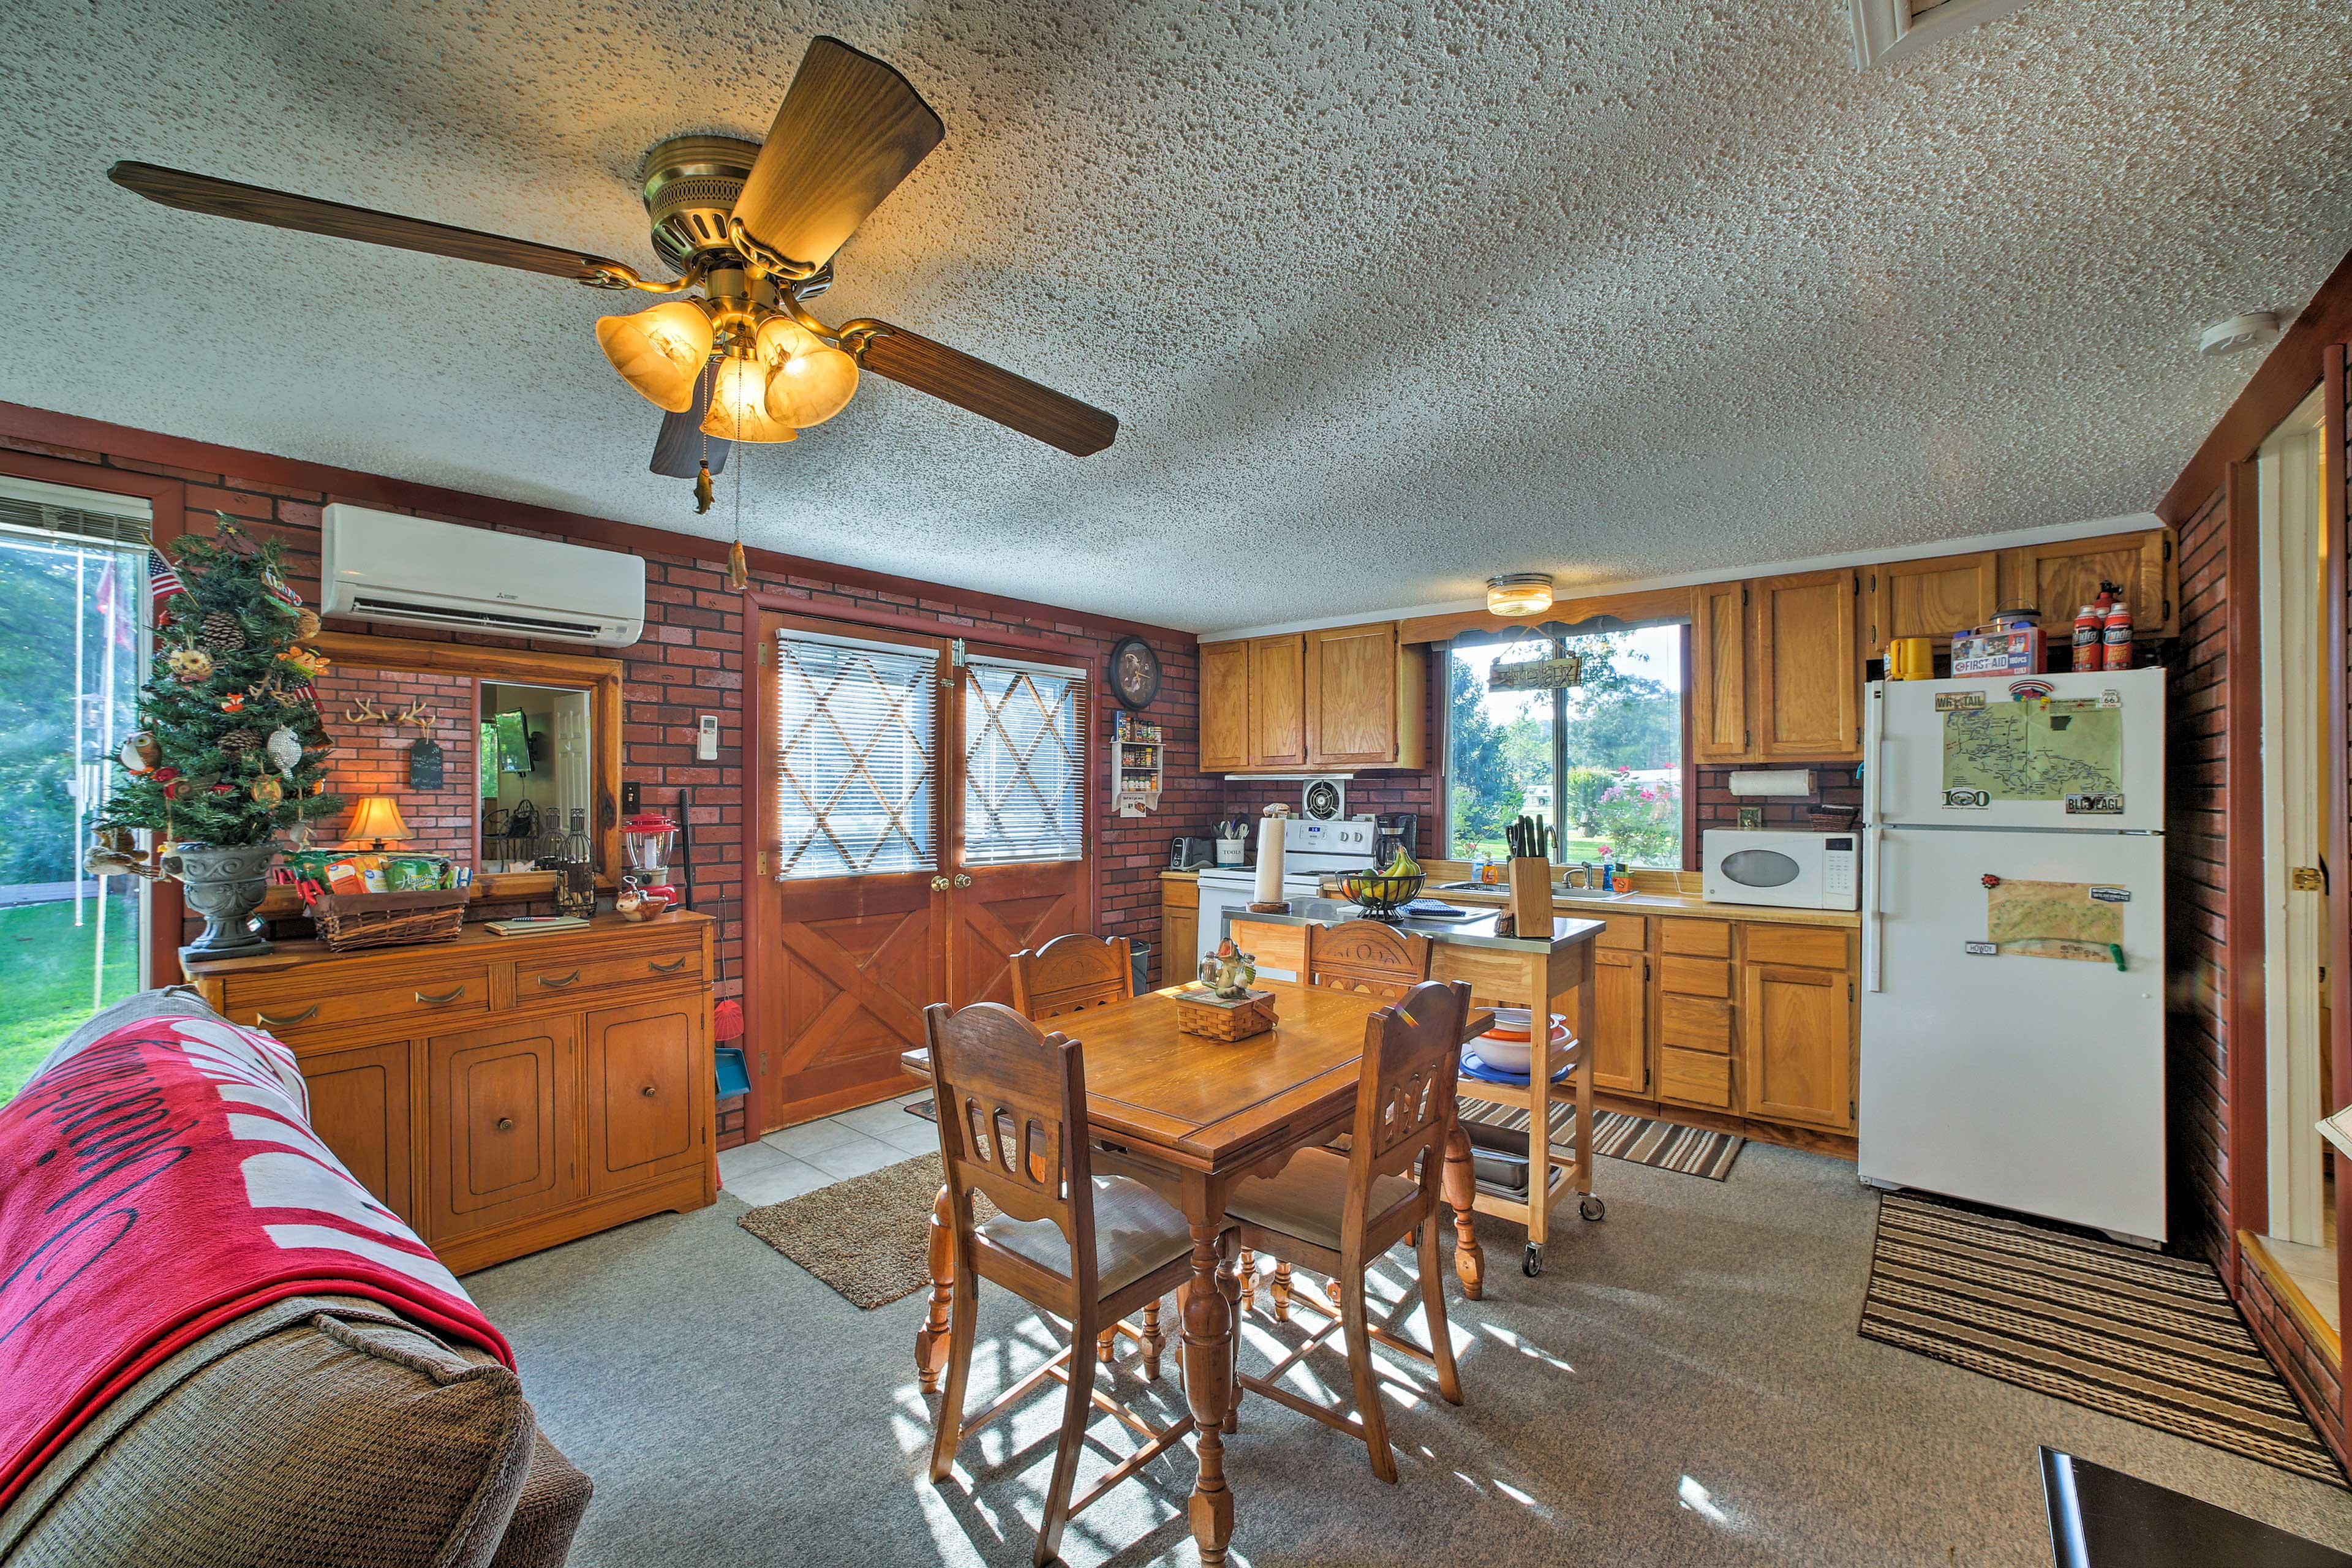 The cottage features a welcoming open-concept floor plan.